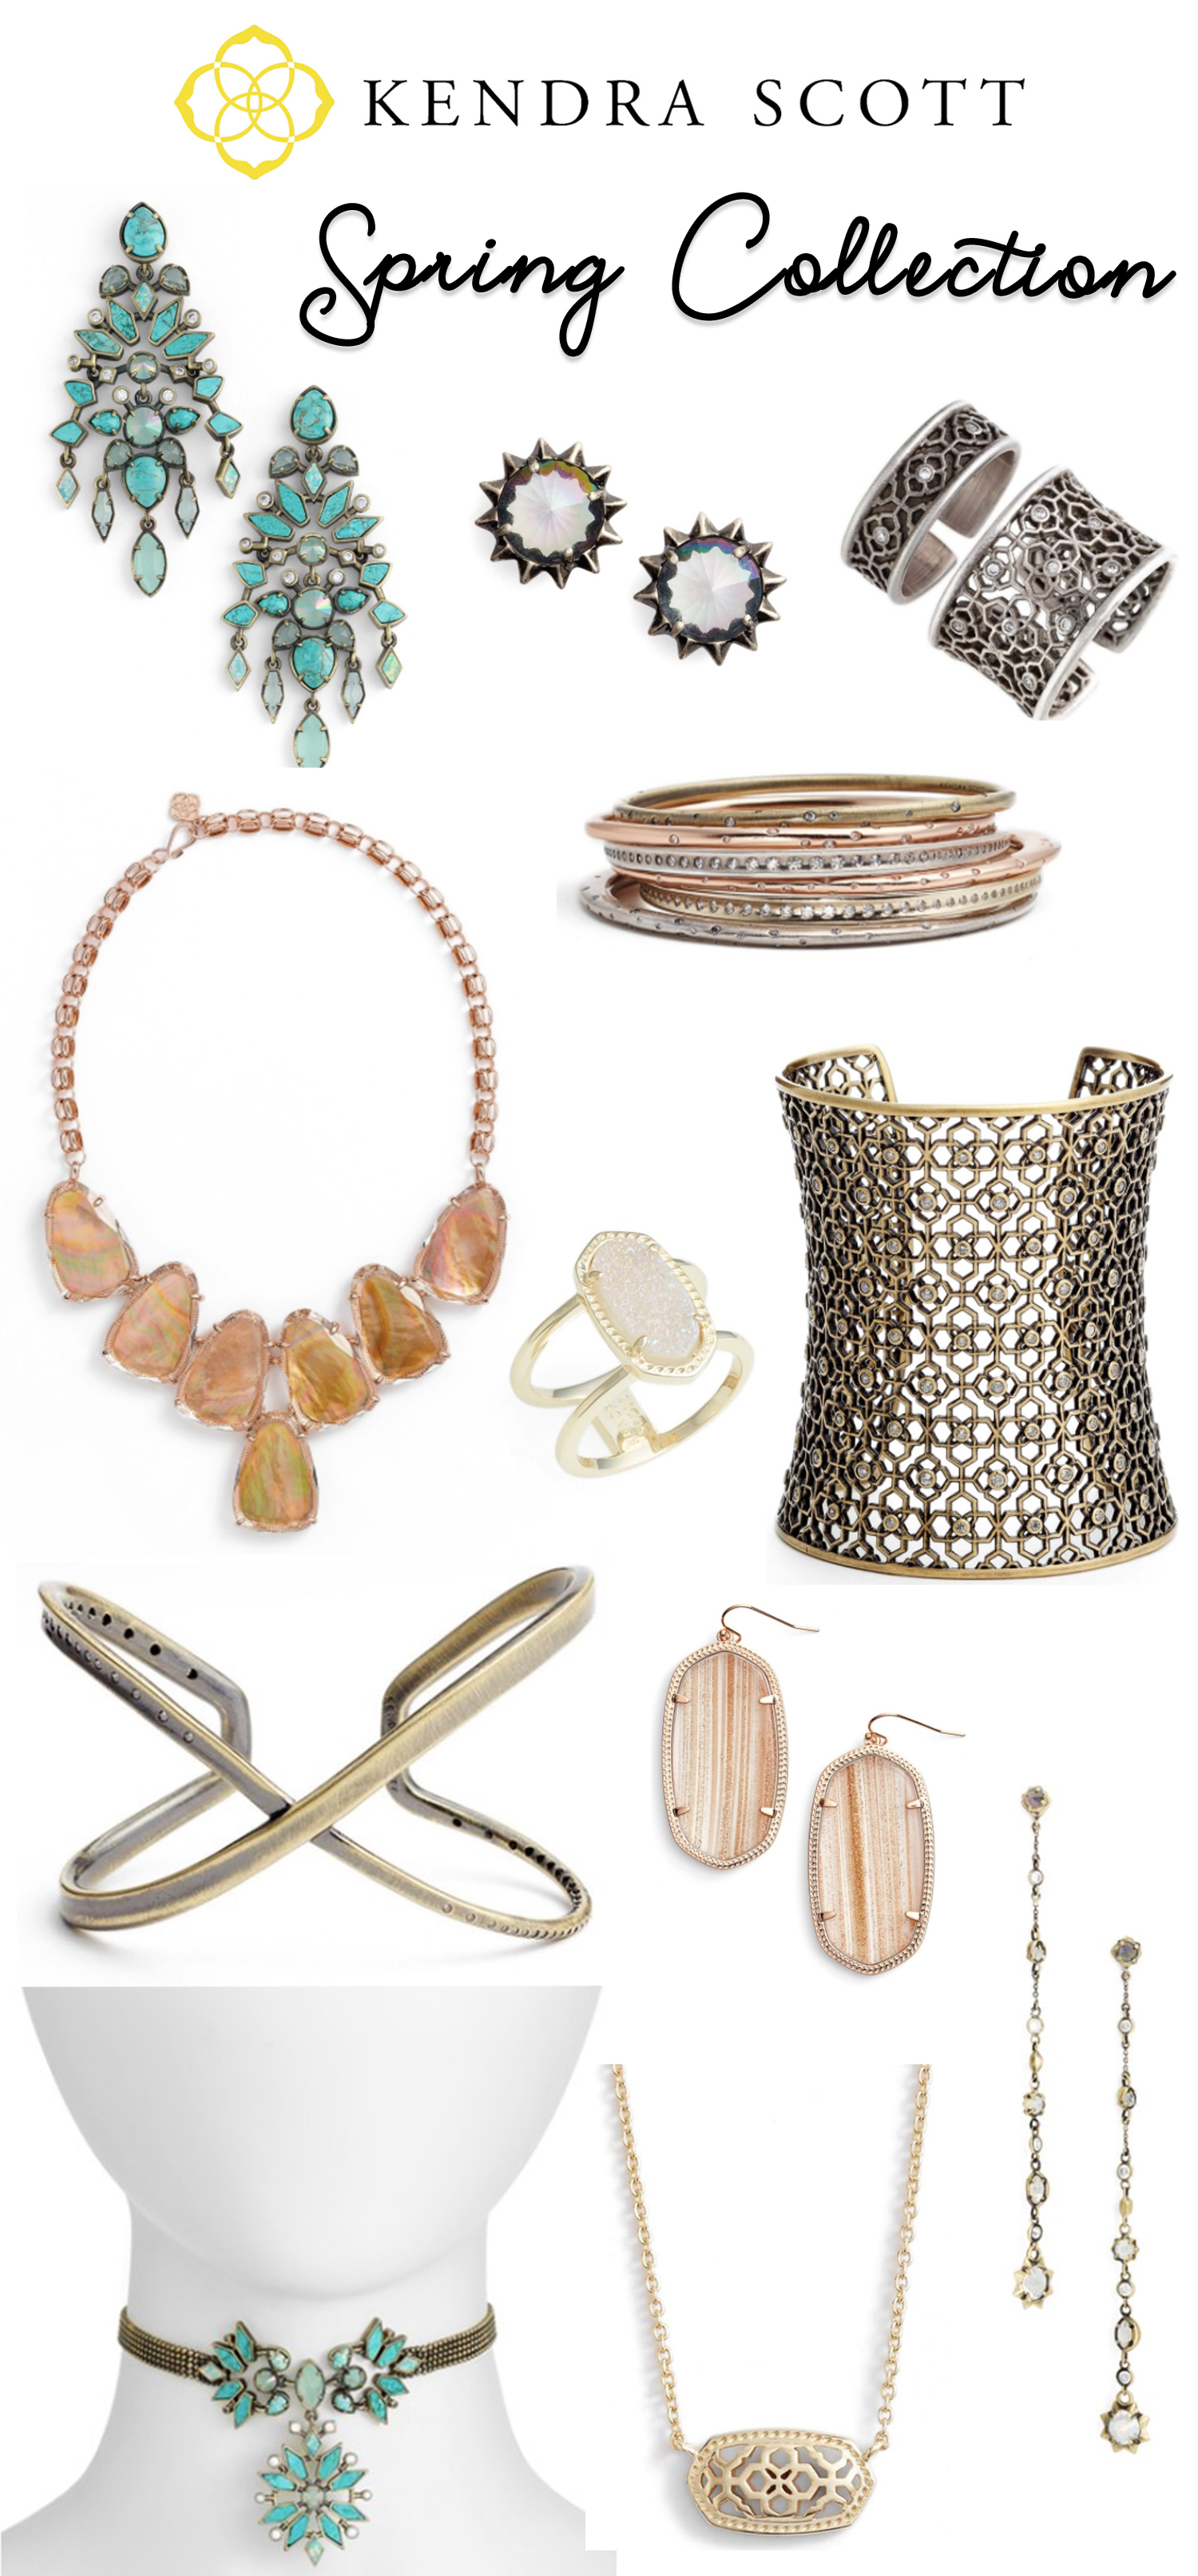 Kendra Scott Spring 2017 Jewelry Collection